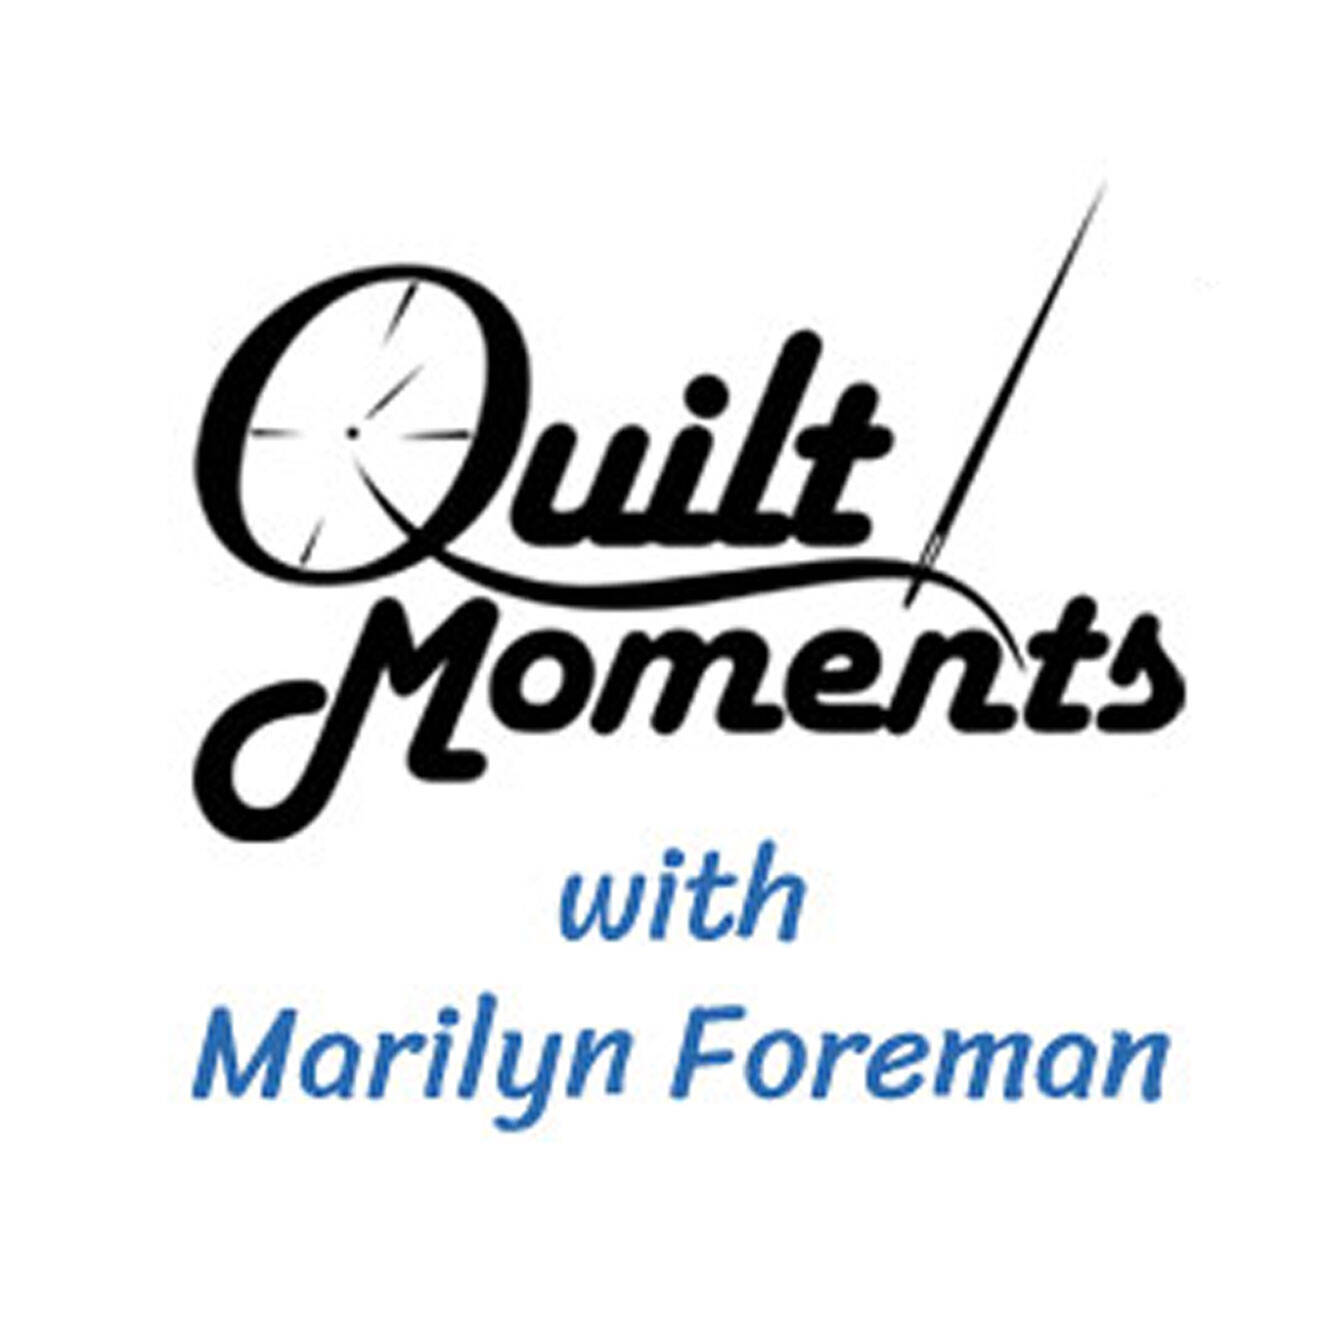 Quilt Moments